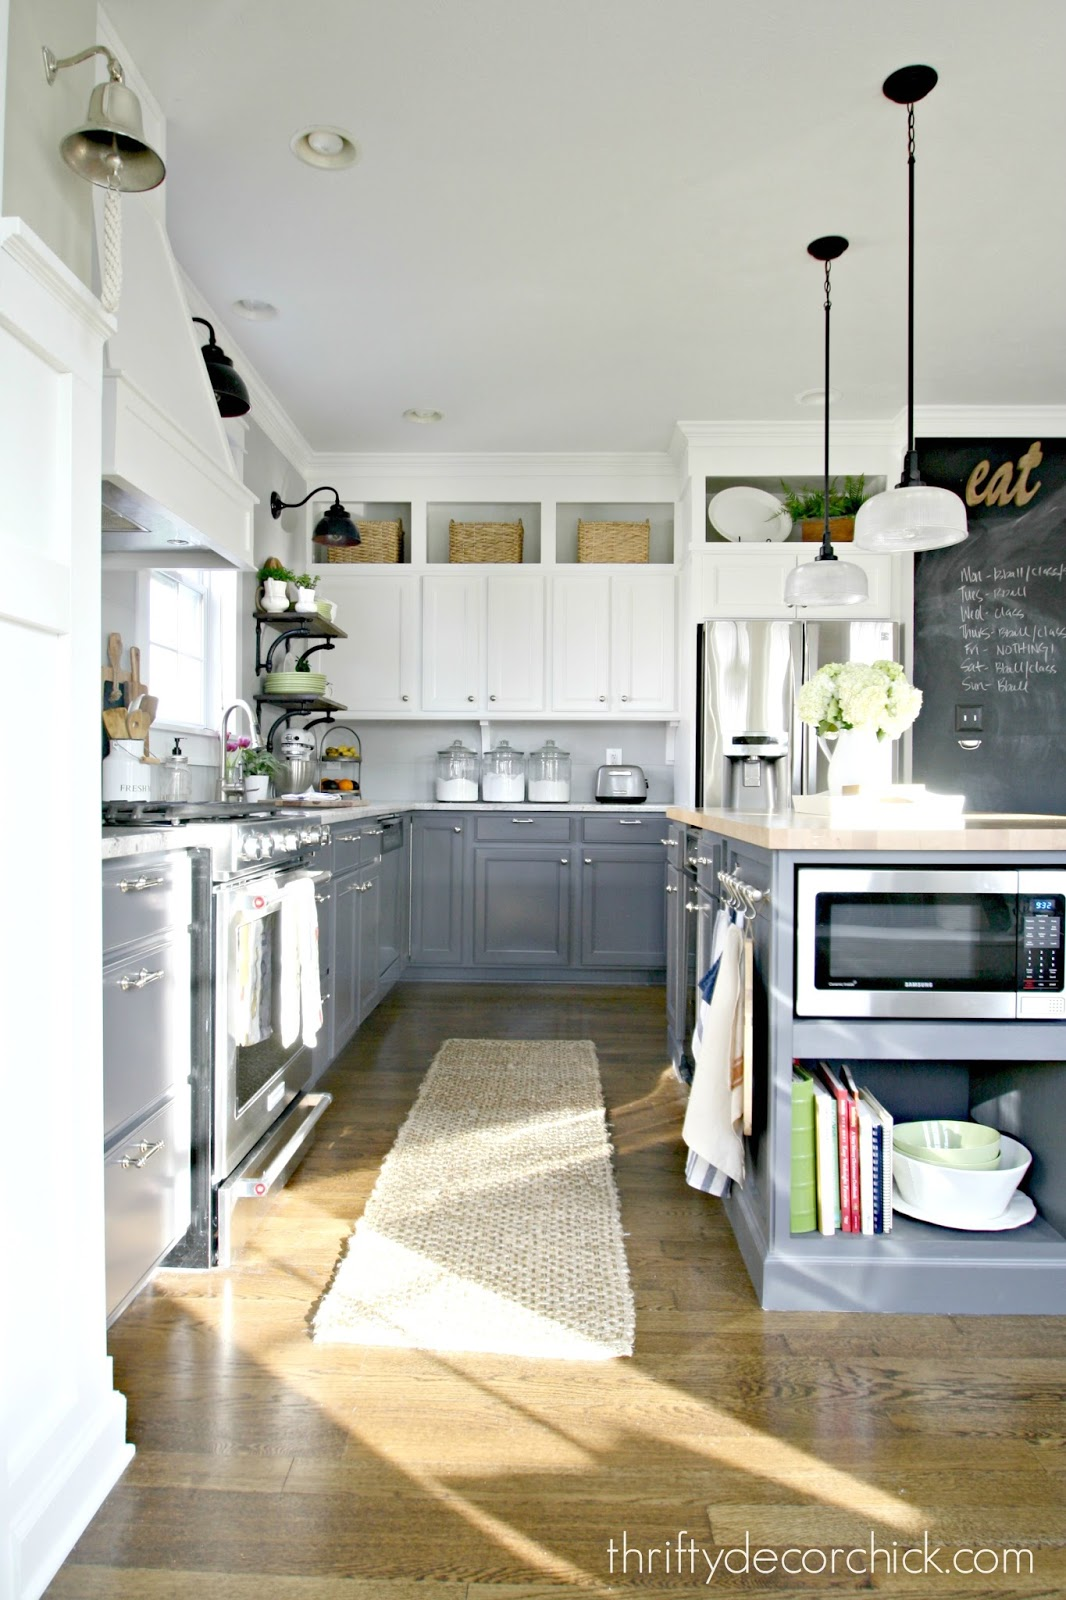 The Kitchen Renovation Budget (and How I Saved!) from Thrifty Decor ...